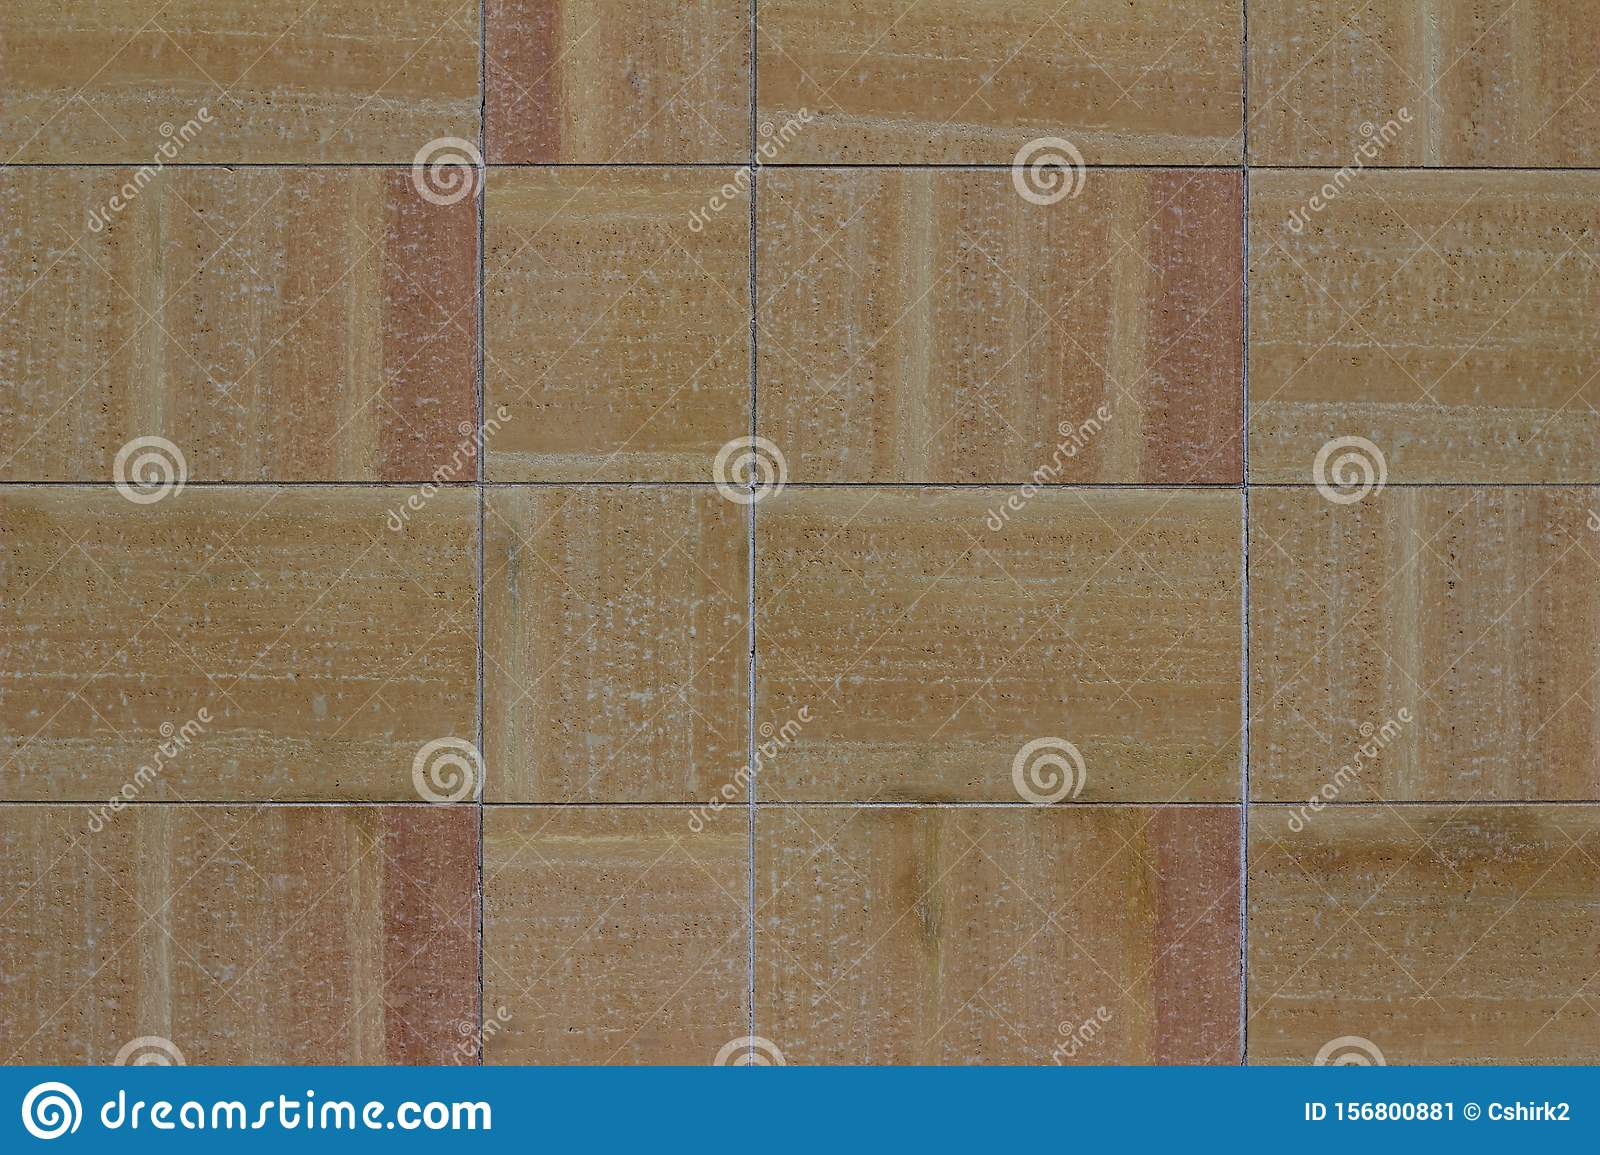 Modern multi-hued stone tile wall texture in shades of beige, tan, and pink